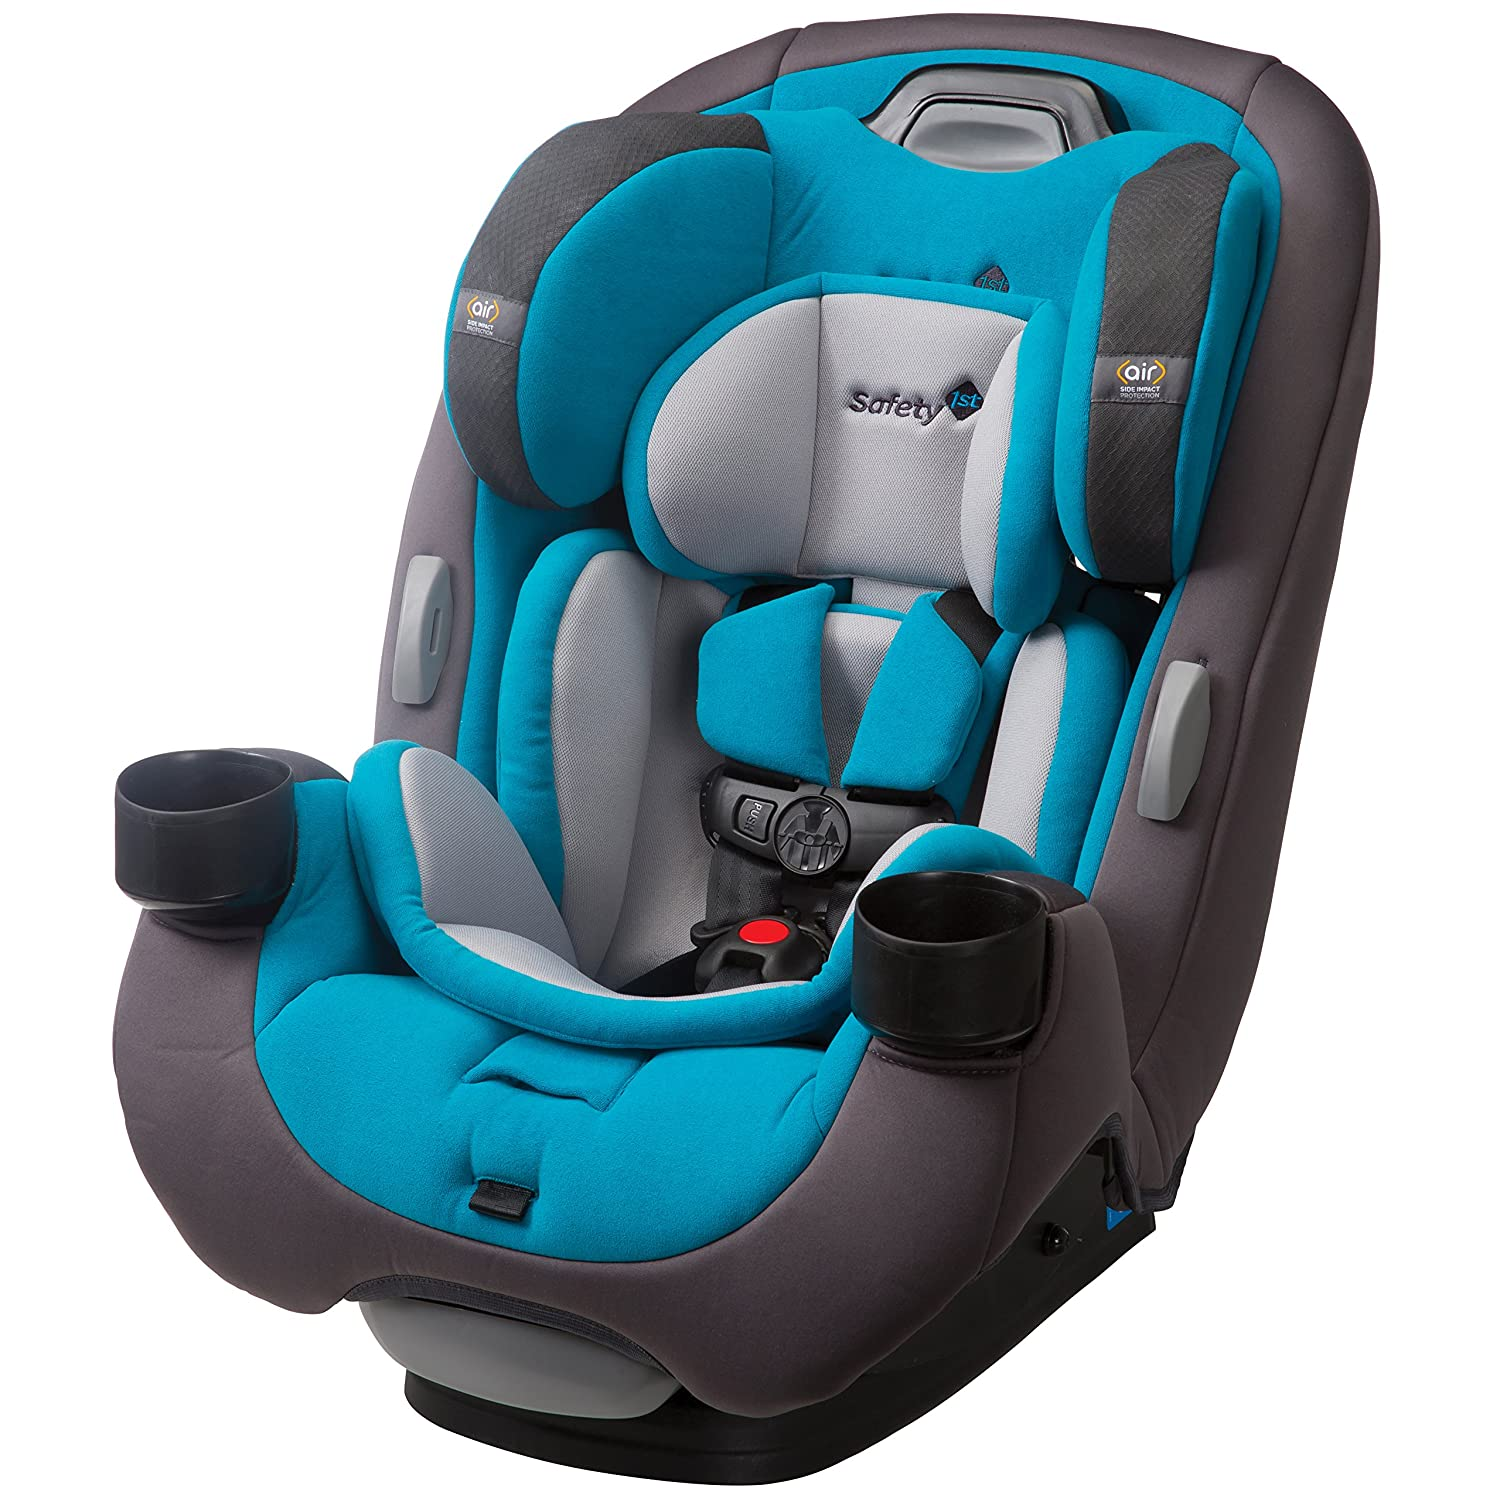 Amazon.com : Safety 1st Grow and Go Air 3-in-1 Car Seat, Evening ...